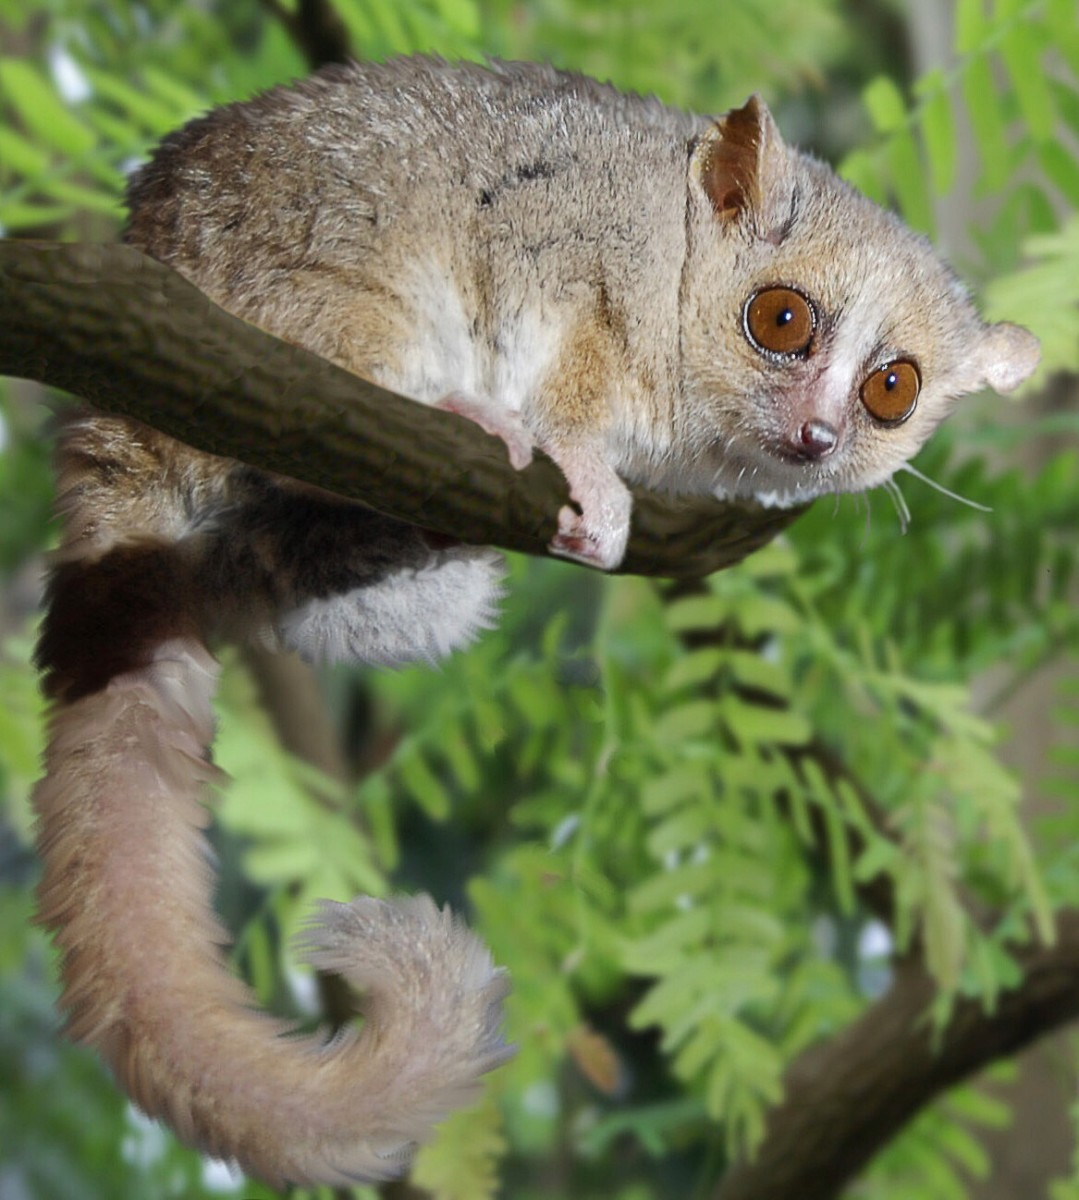 Mouse Lemurs - Tiny Endangered Primates of Madagascar